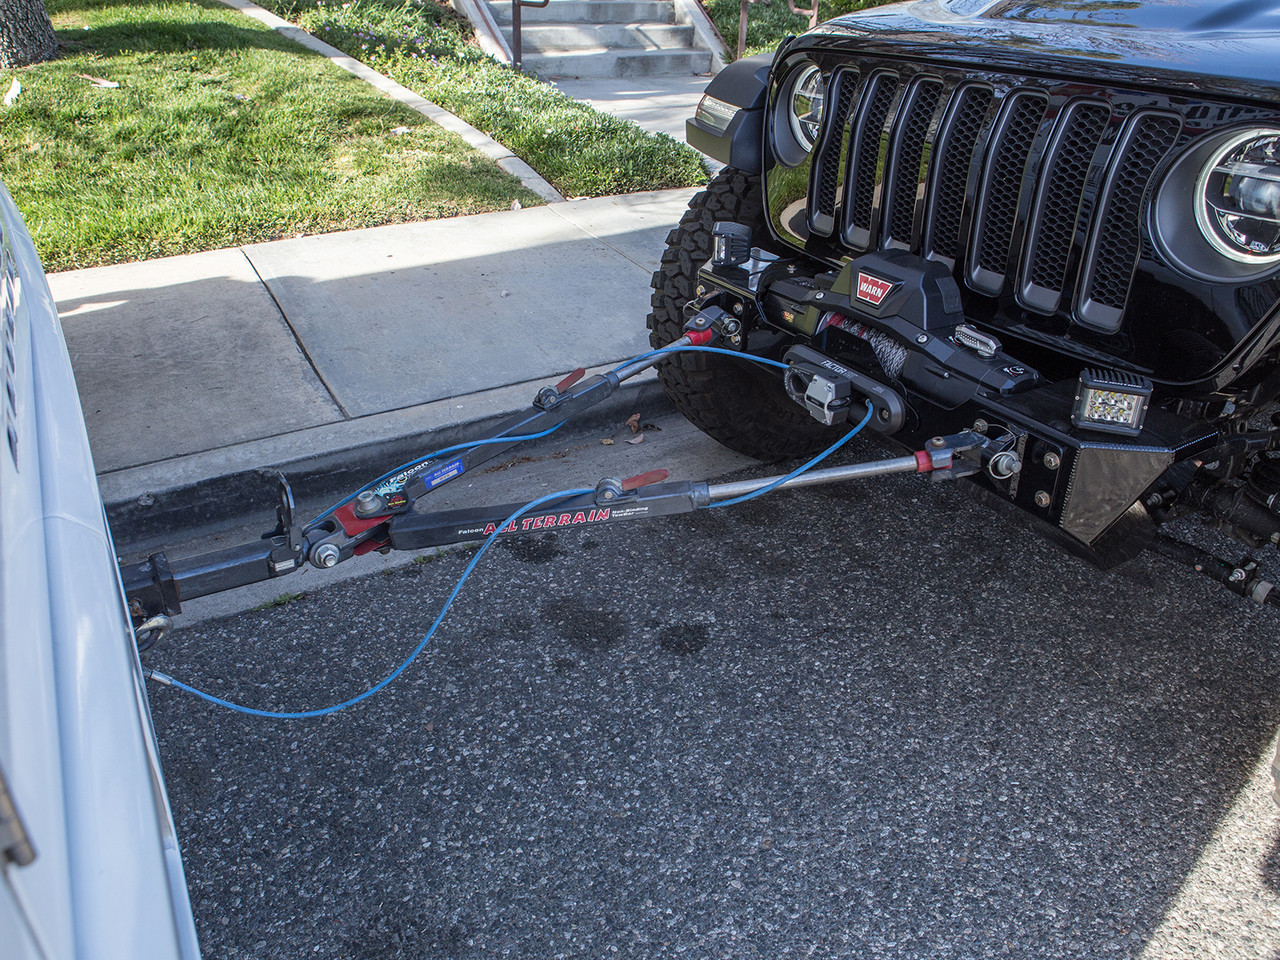 Heavy duty steel tow points on the bumper allow you to flat tow with proper ends on tow bar